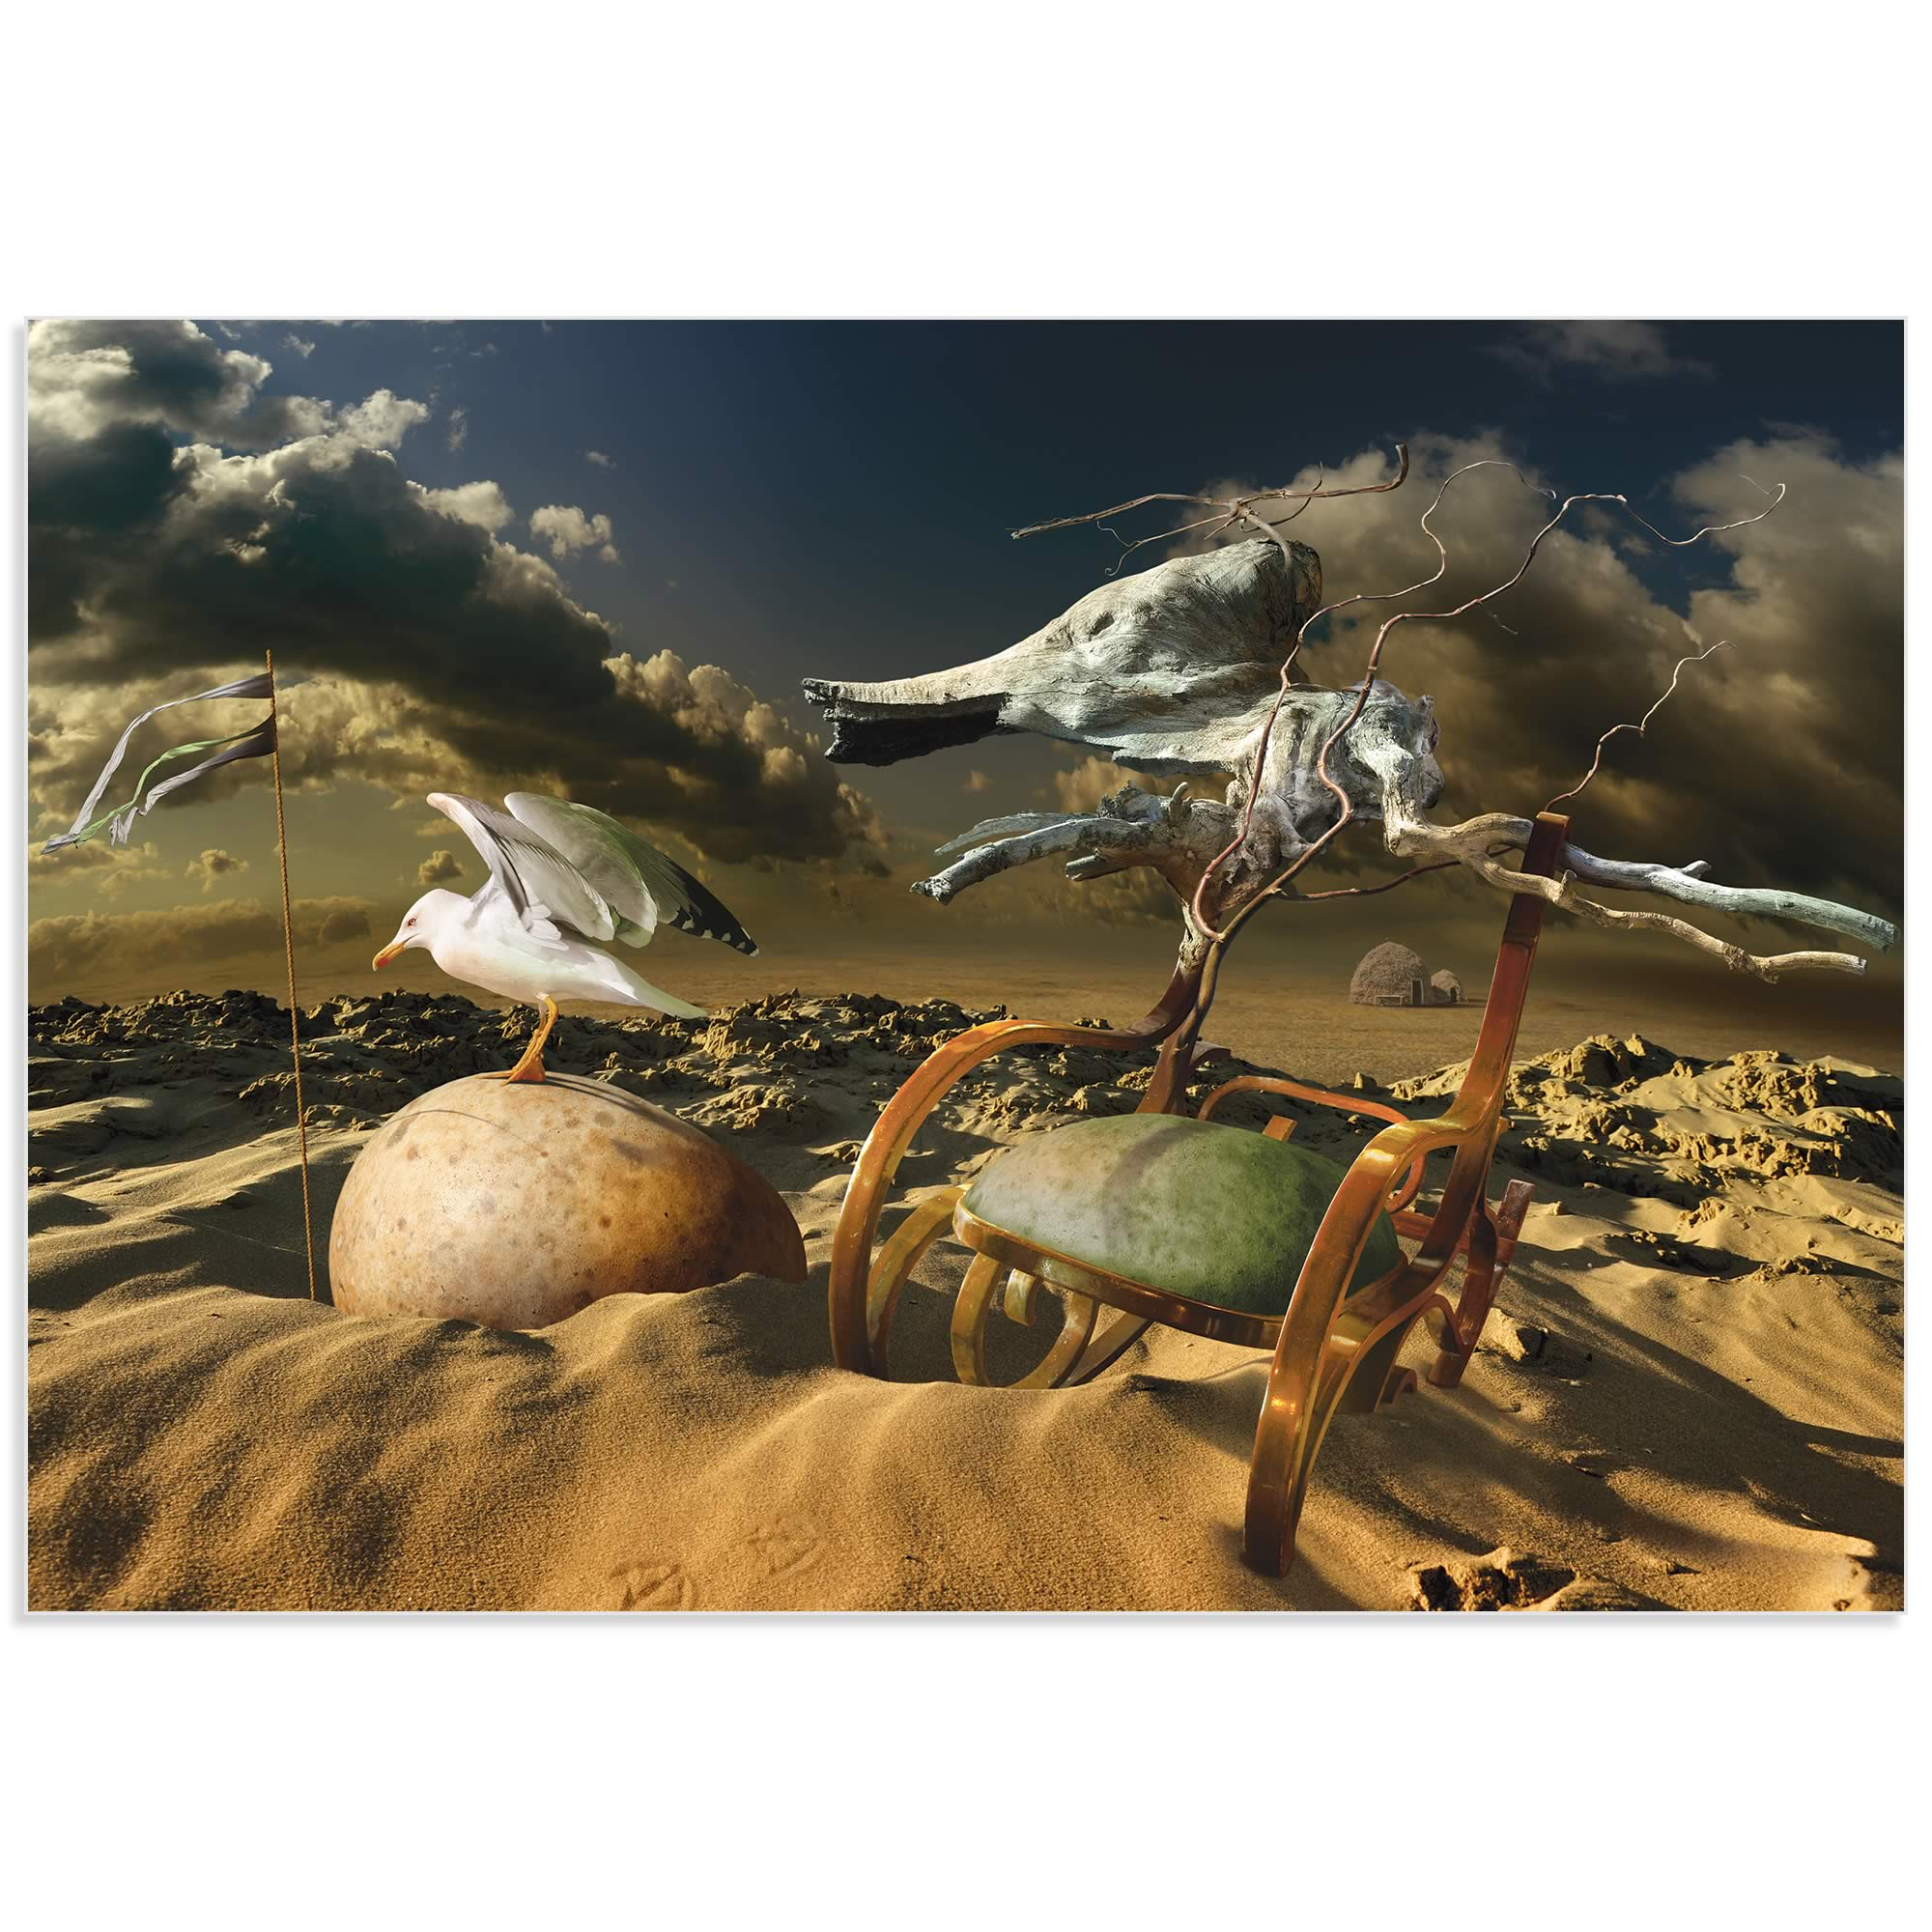 Desert Life by Radoslav Penchev - Surreal Landscape Art on Metal or Acrylic - Alternate View 2